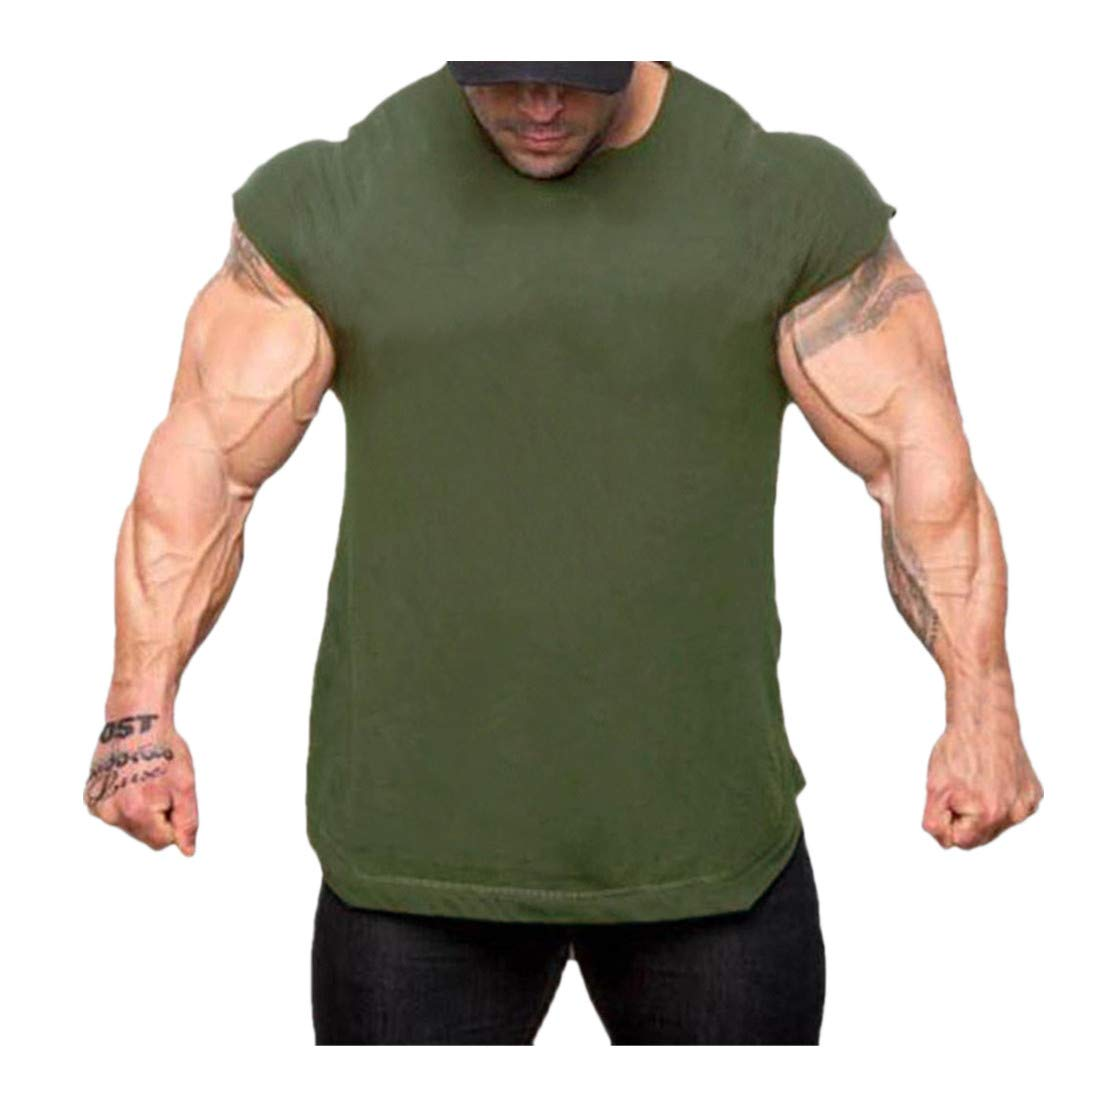 WEUIE Mens Sportswear Personality Men's Summer Autumn Short Sleeved Plaid T Shirt Top Pullover Blouse (S, Army Green)